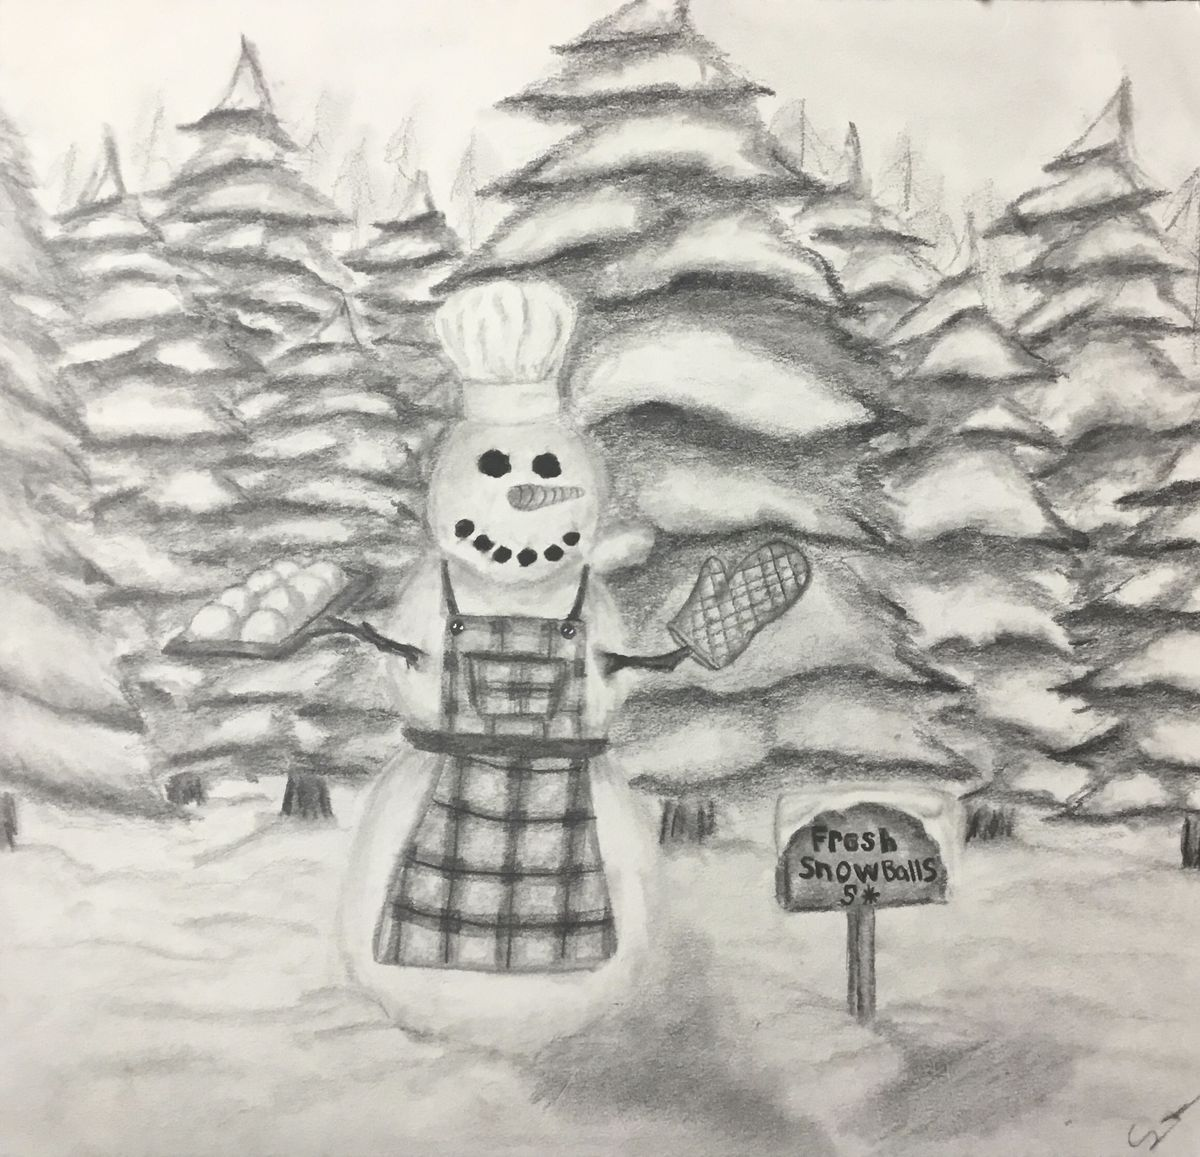 A snow chef by Caeley D., 16, a sophomore at Lincoln-Way West High School in New Lenox.